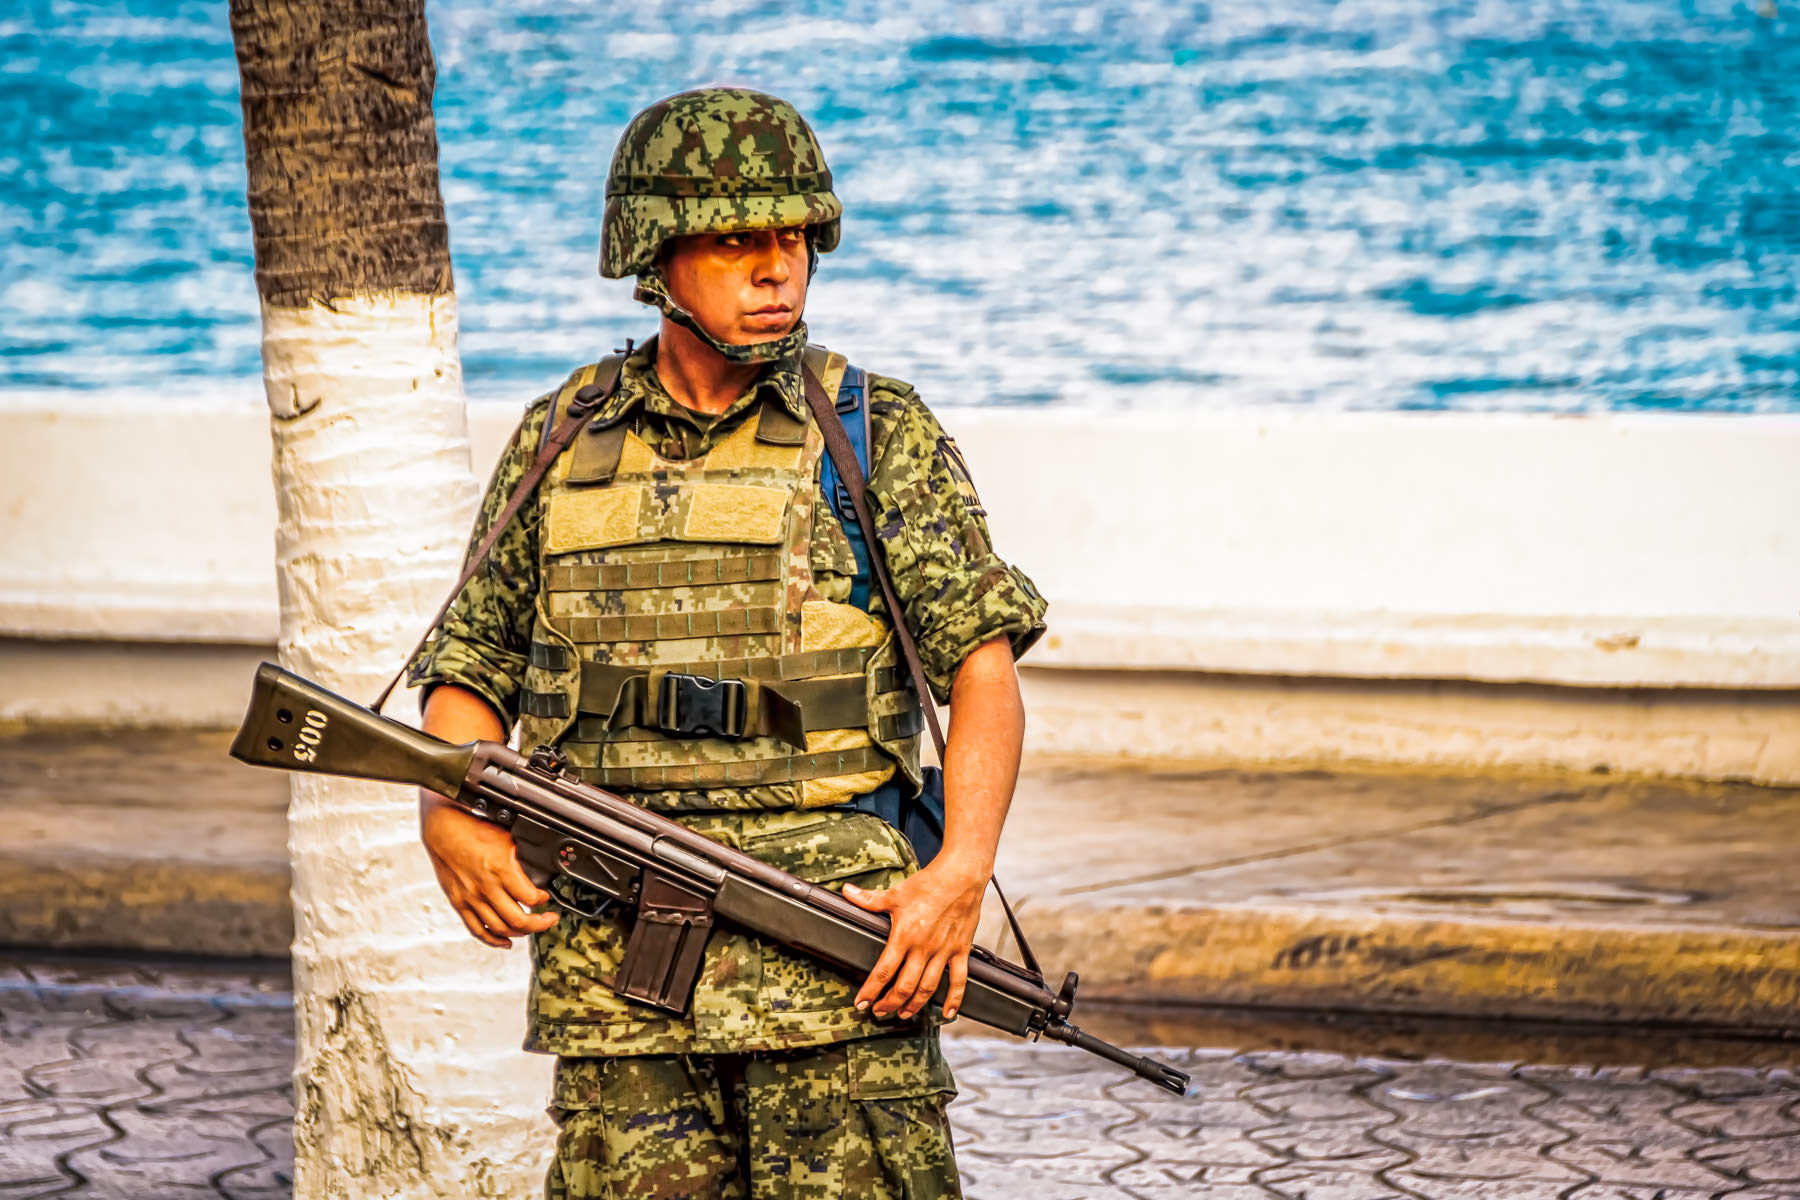 A soldier keeps watch in San Miguel, Cozumel, Mexico.